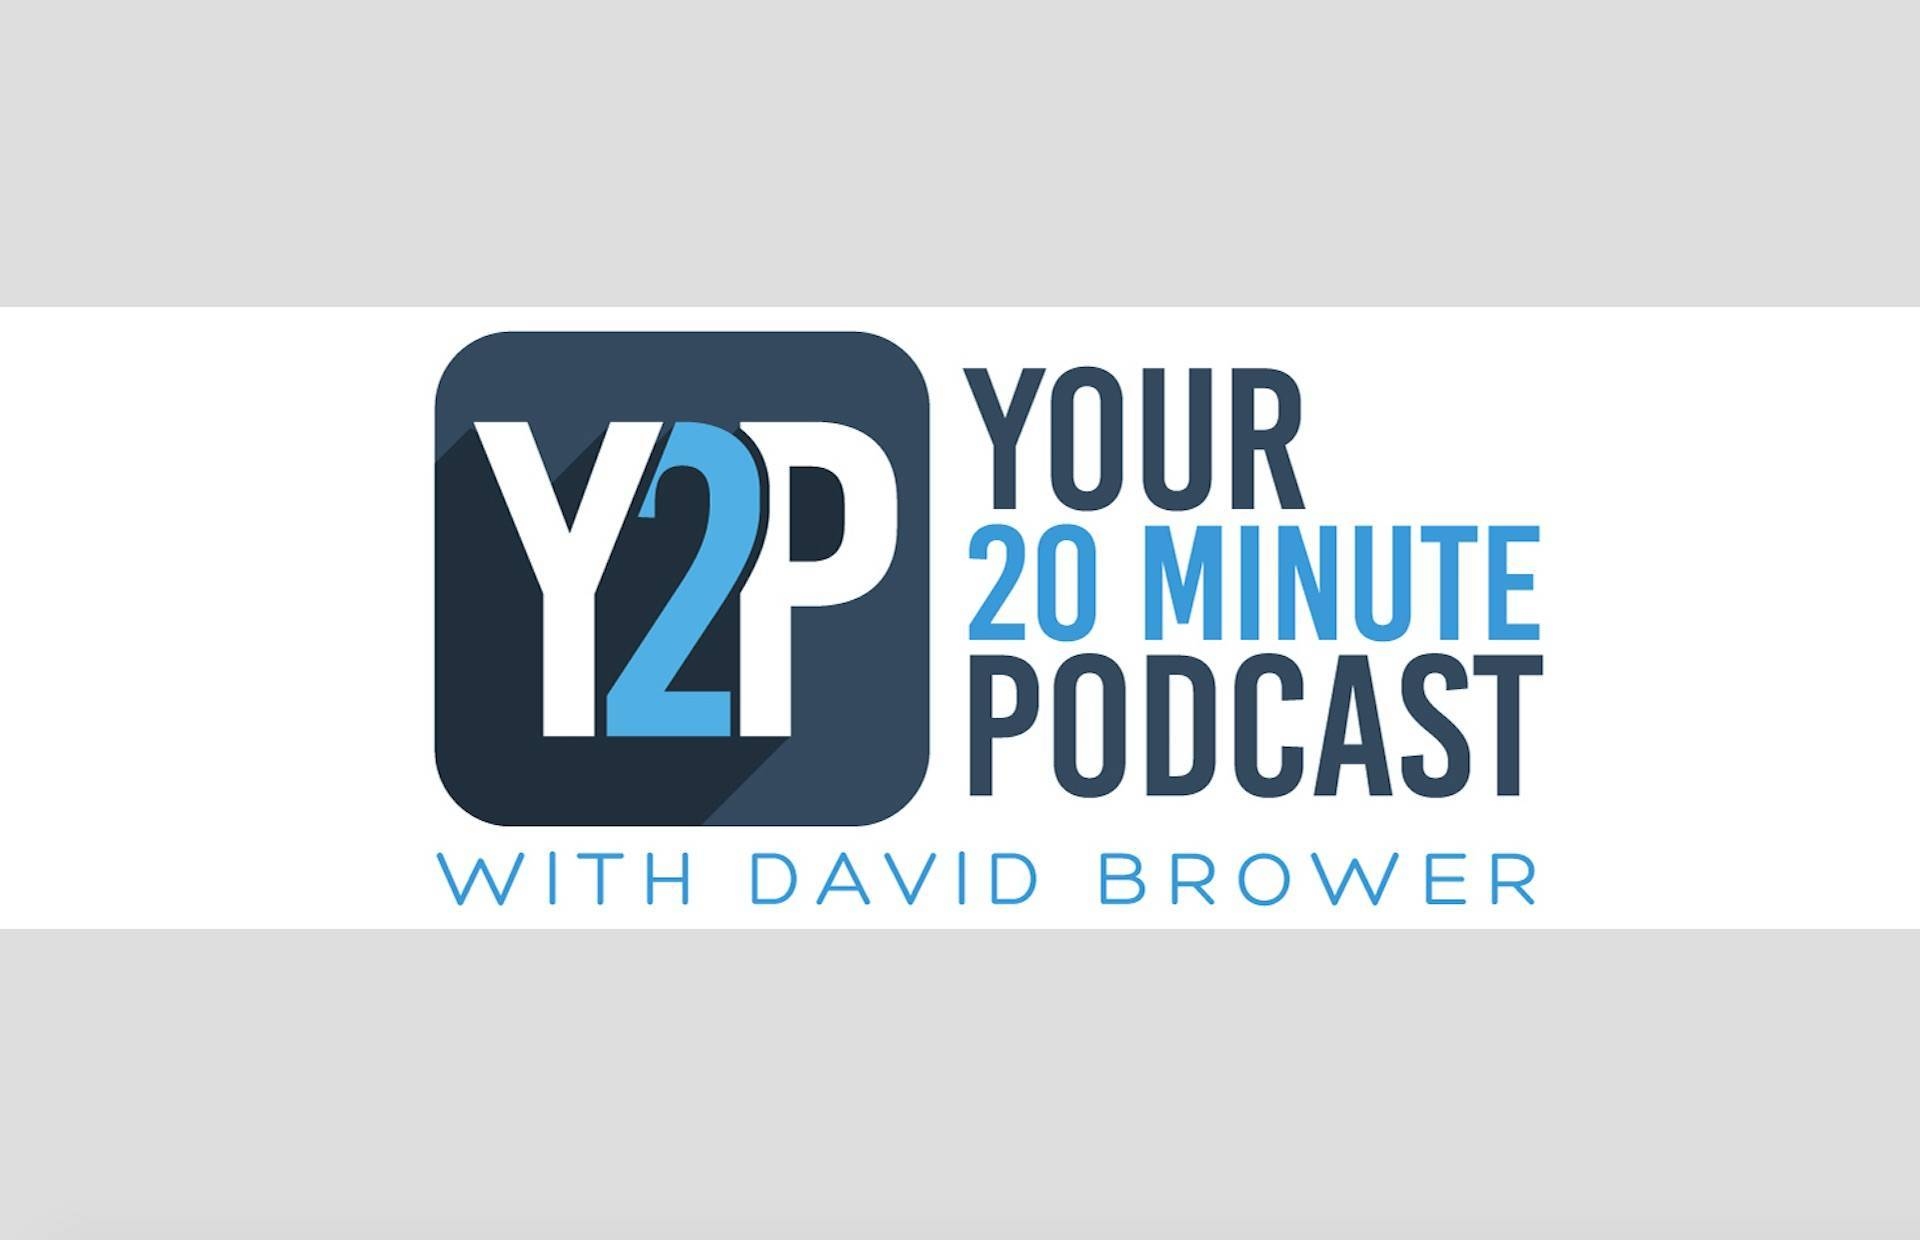 Your 20 Minute Podcast ~ Anxiety, Relationships, and Family Therapy